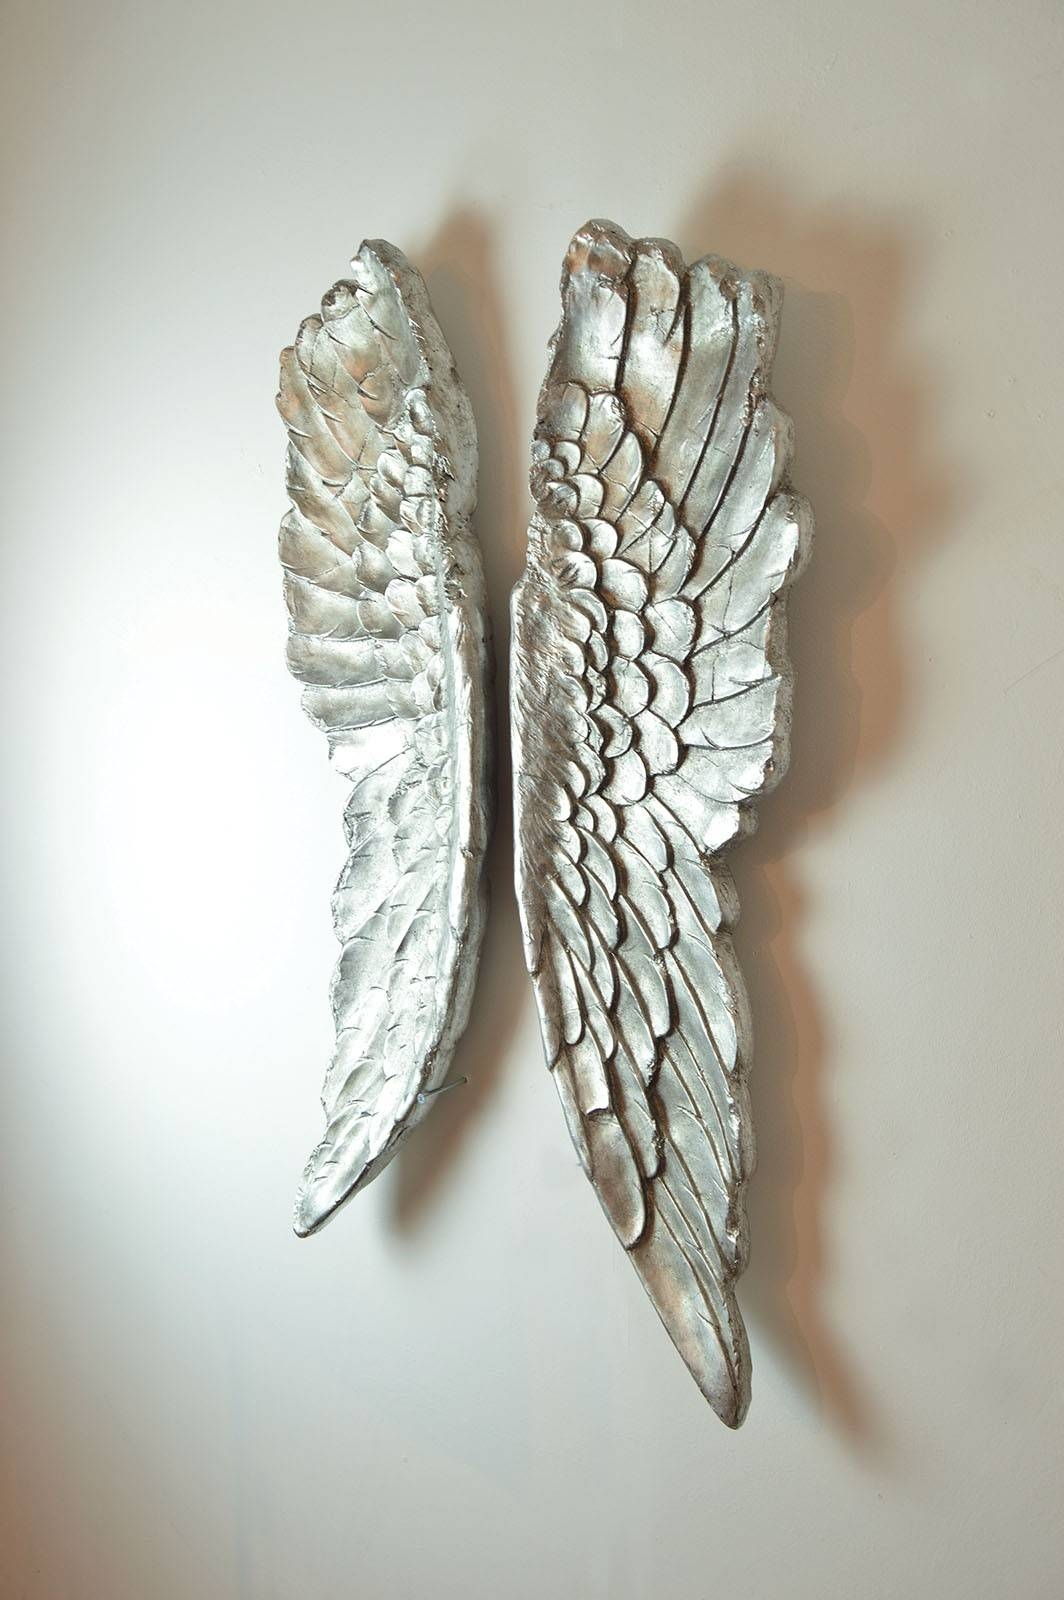 The Angel Wings Wall Decor : Garnish With Angel Wings Wall Decor Throughout Most Popular Angel Wings Wall Art (View 16 of 20)